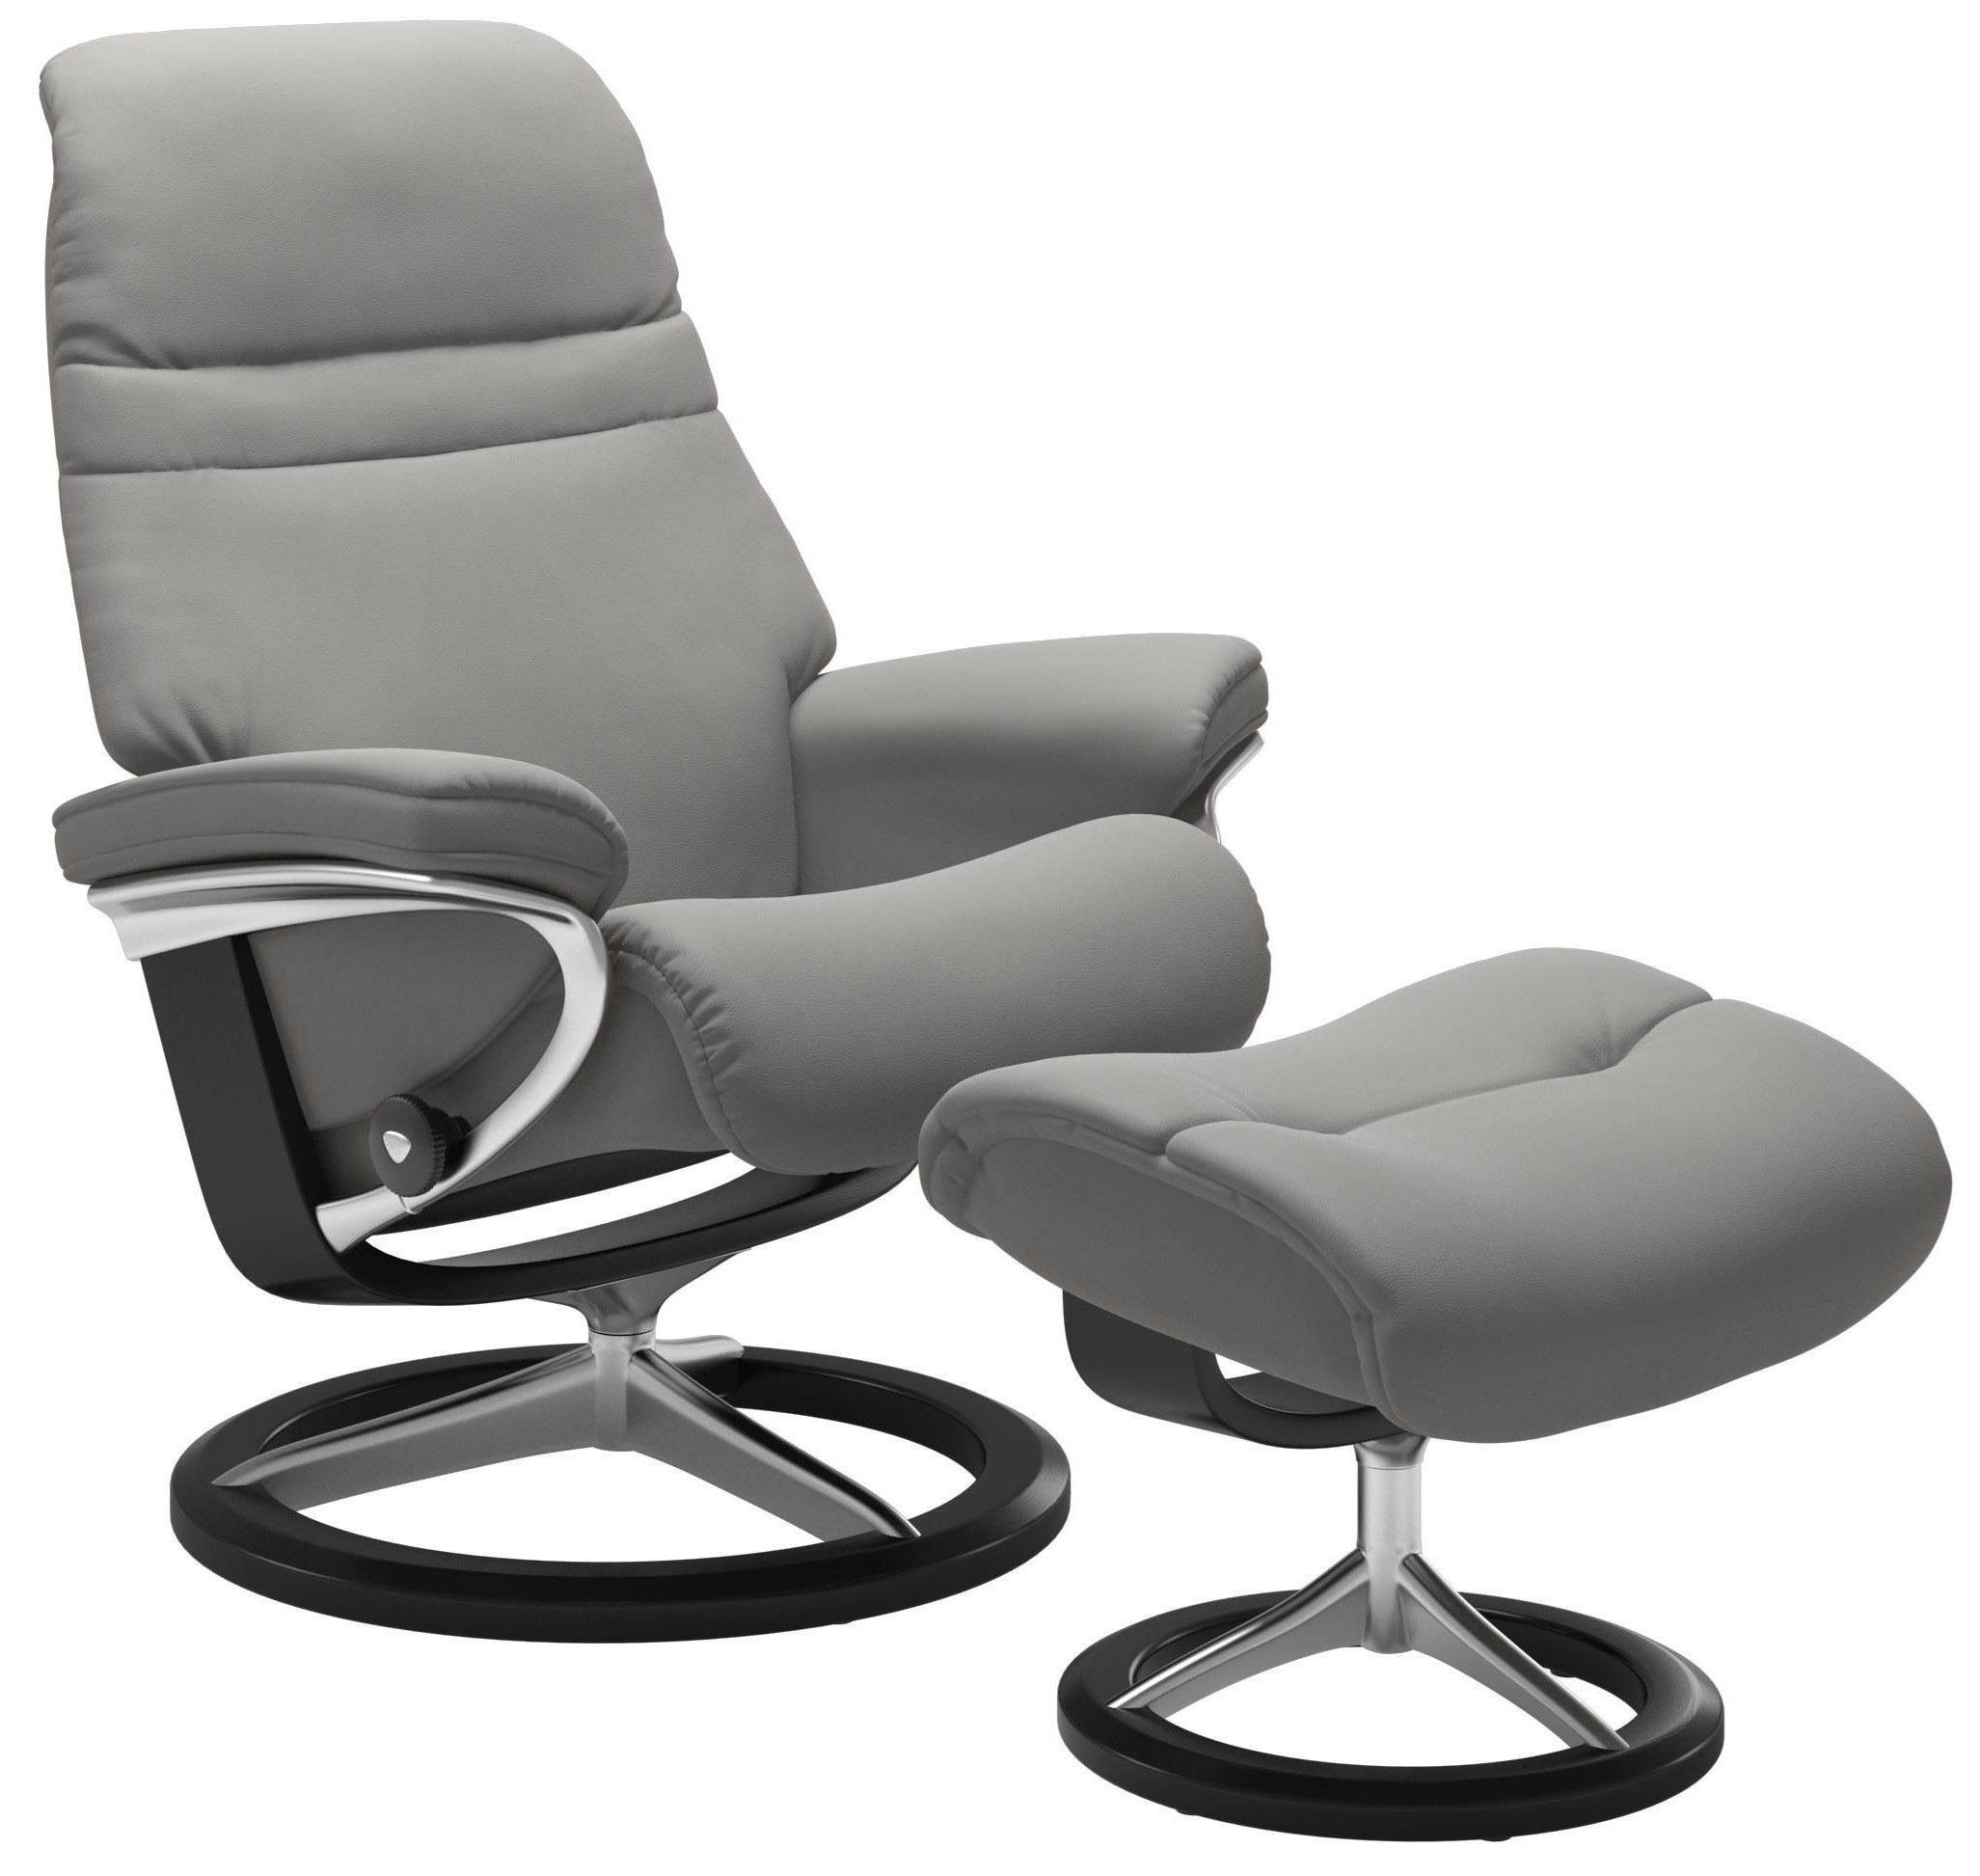 Sunrise Medium Reclining Chair and Ottoman by Stressless at Bennett's Furniture and Mattresses